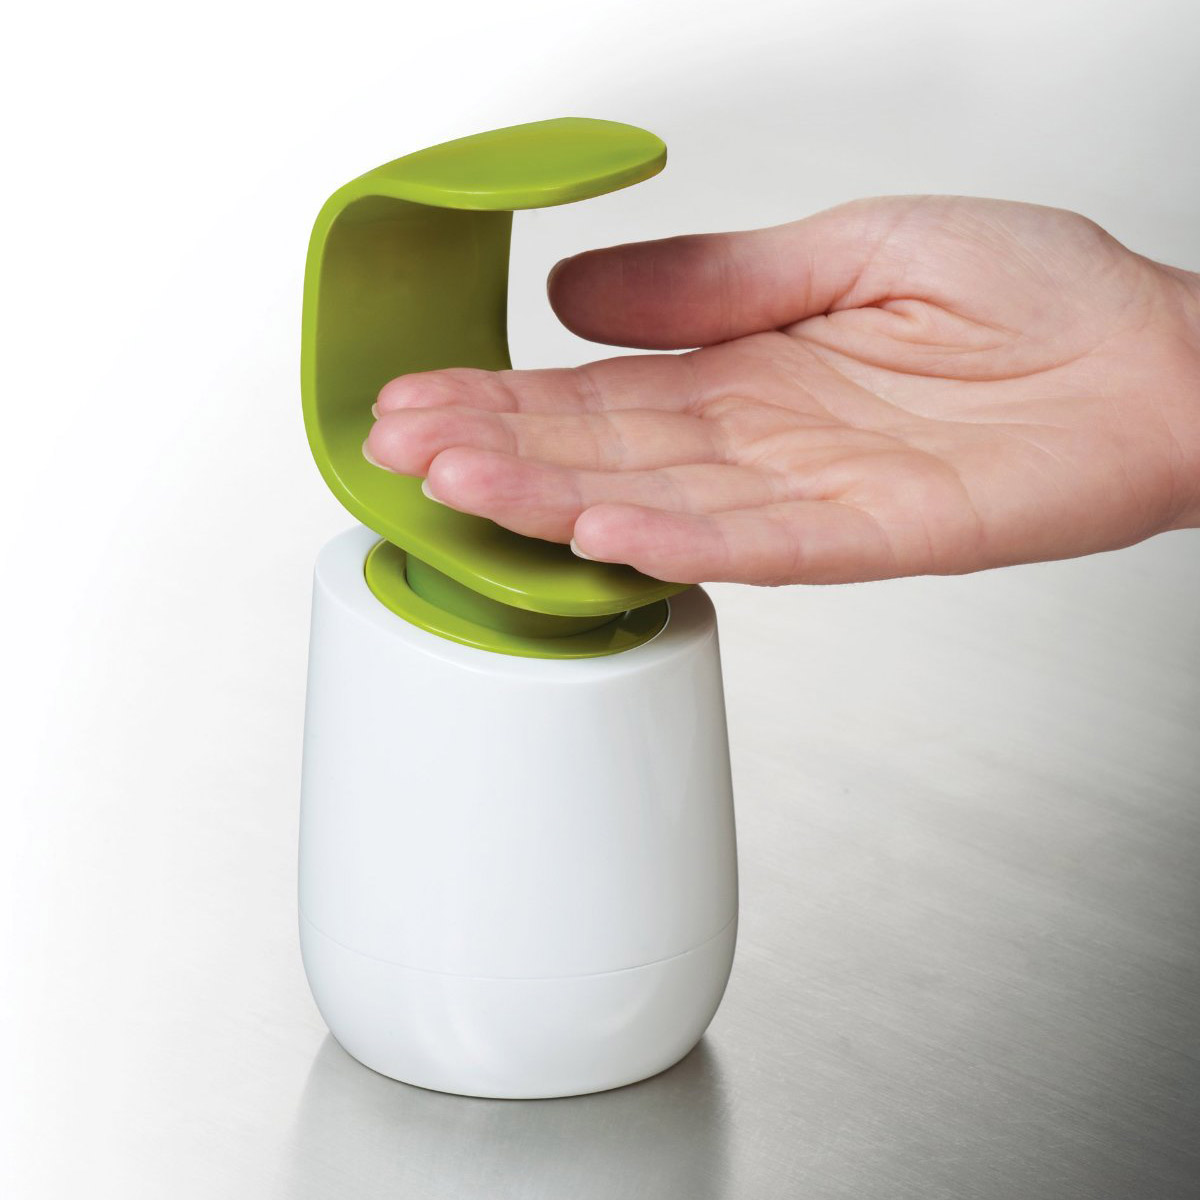 C Pump   Back of the Hand Hygienic Soap Dispenser. C Pump   Back of the Hand Hygienic Soap Dispenser   The Green Head